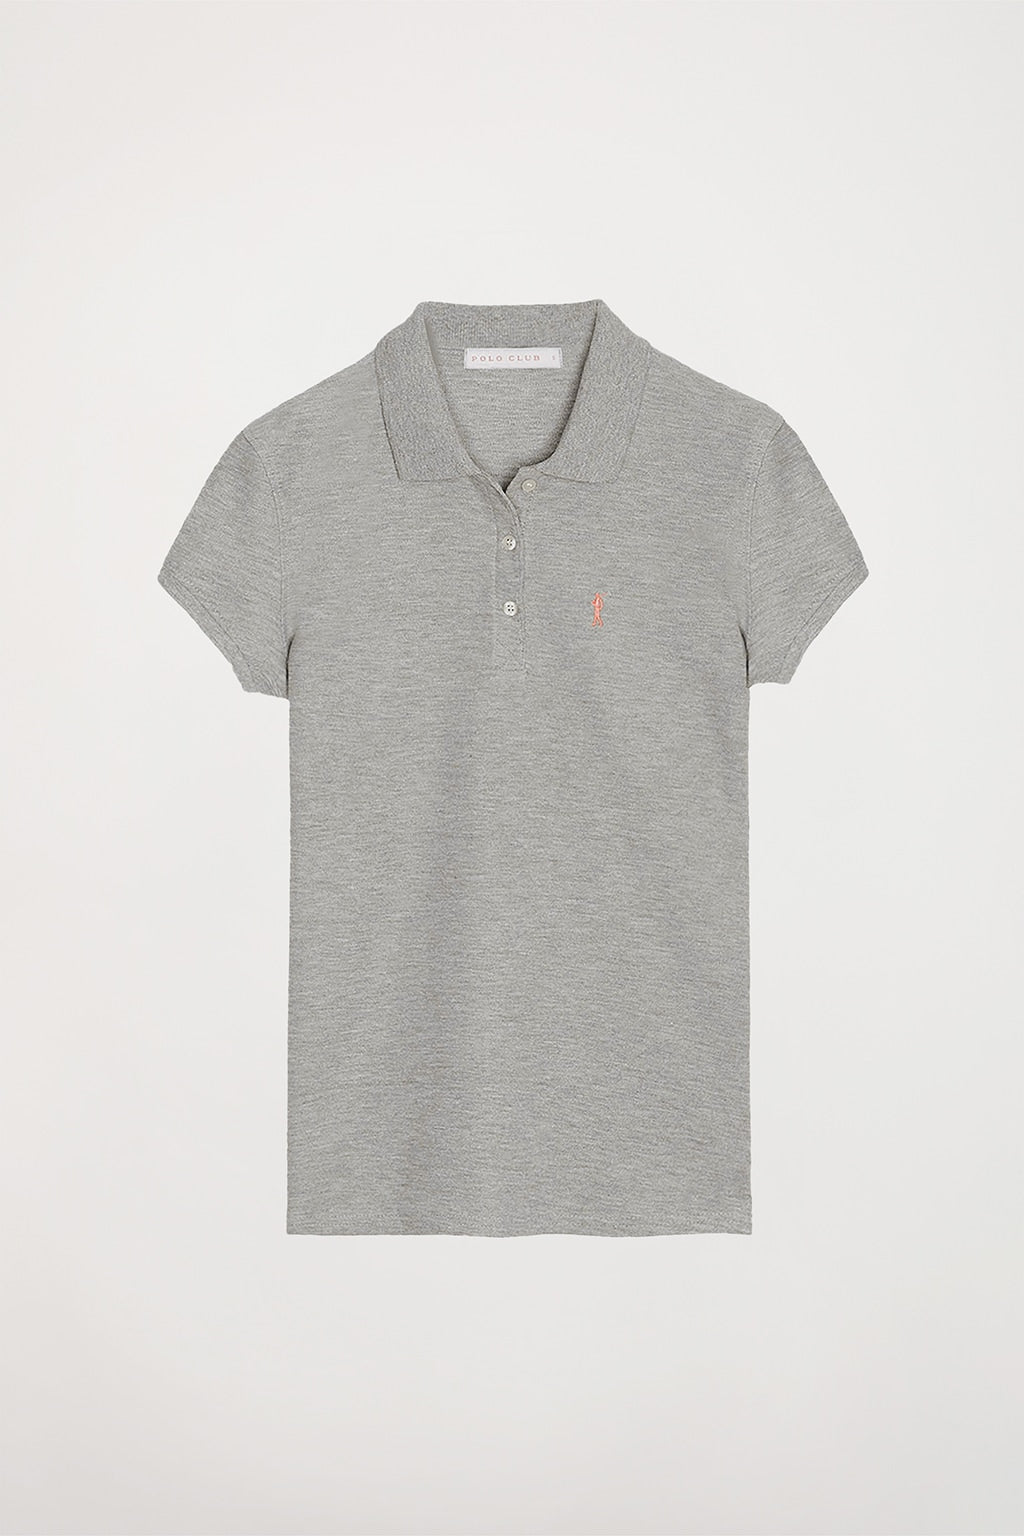 Polo gris vigoré con logo bordado